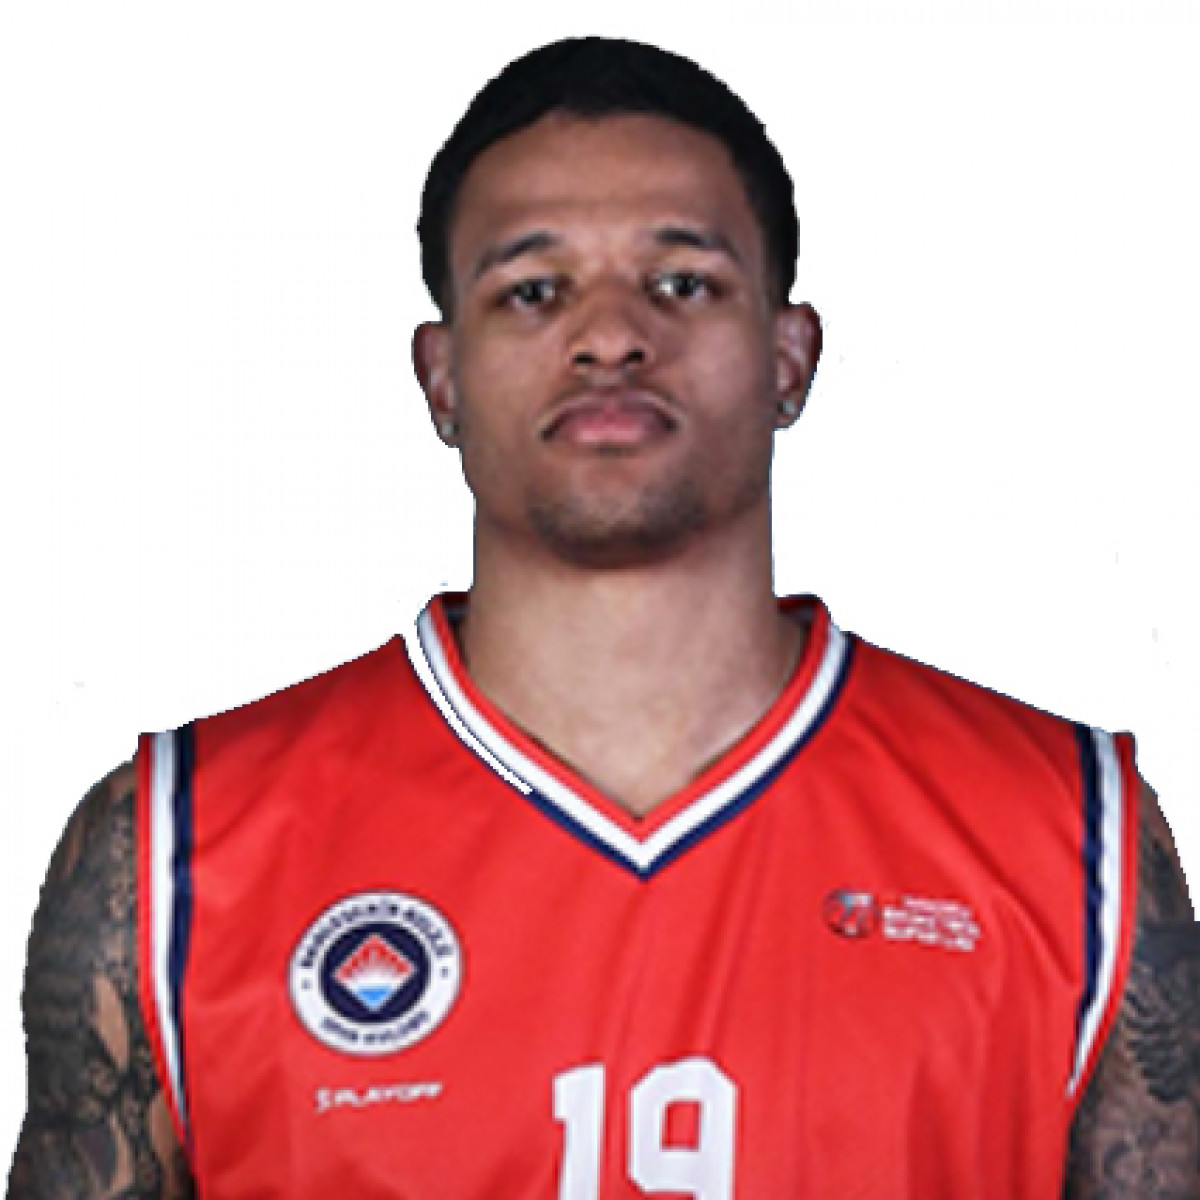 Photo of Chris Babb, 2018-2019 season